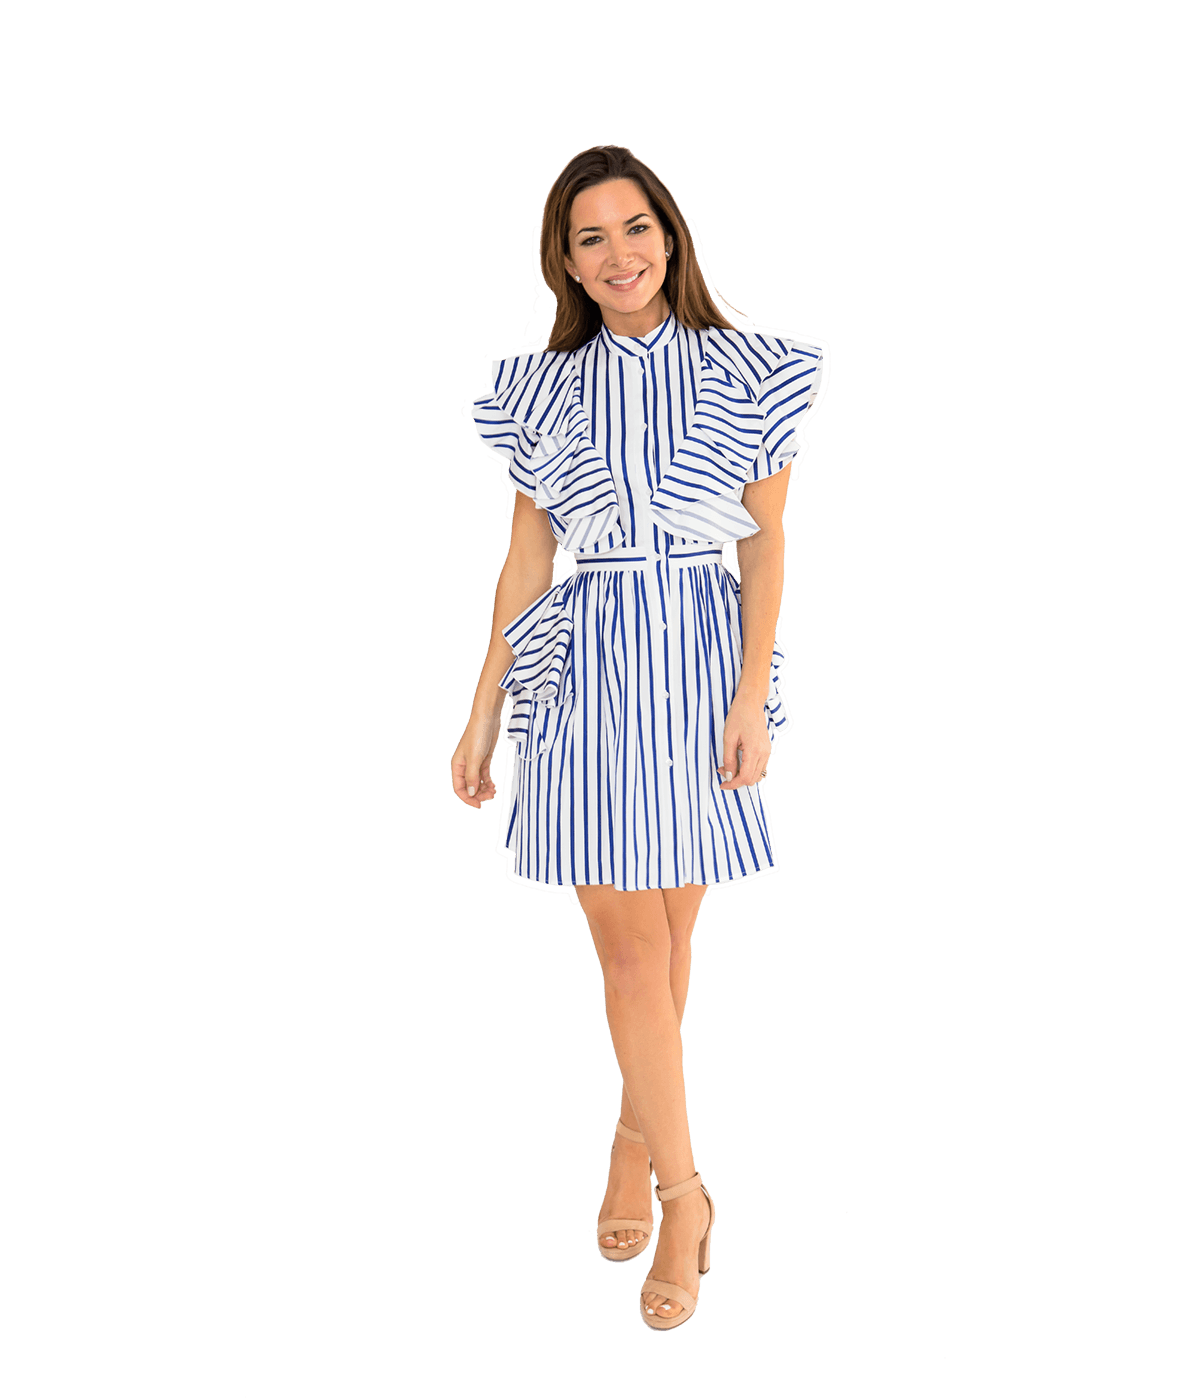 Stripe Ruffle Dress - Lady Jetset